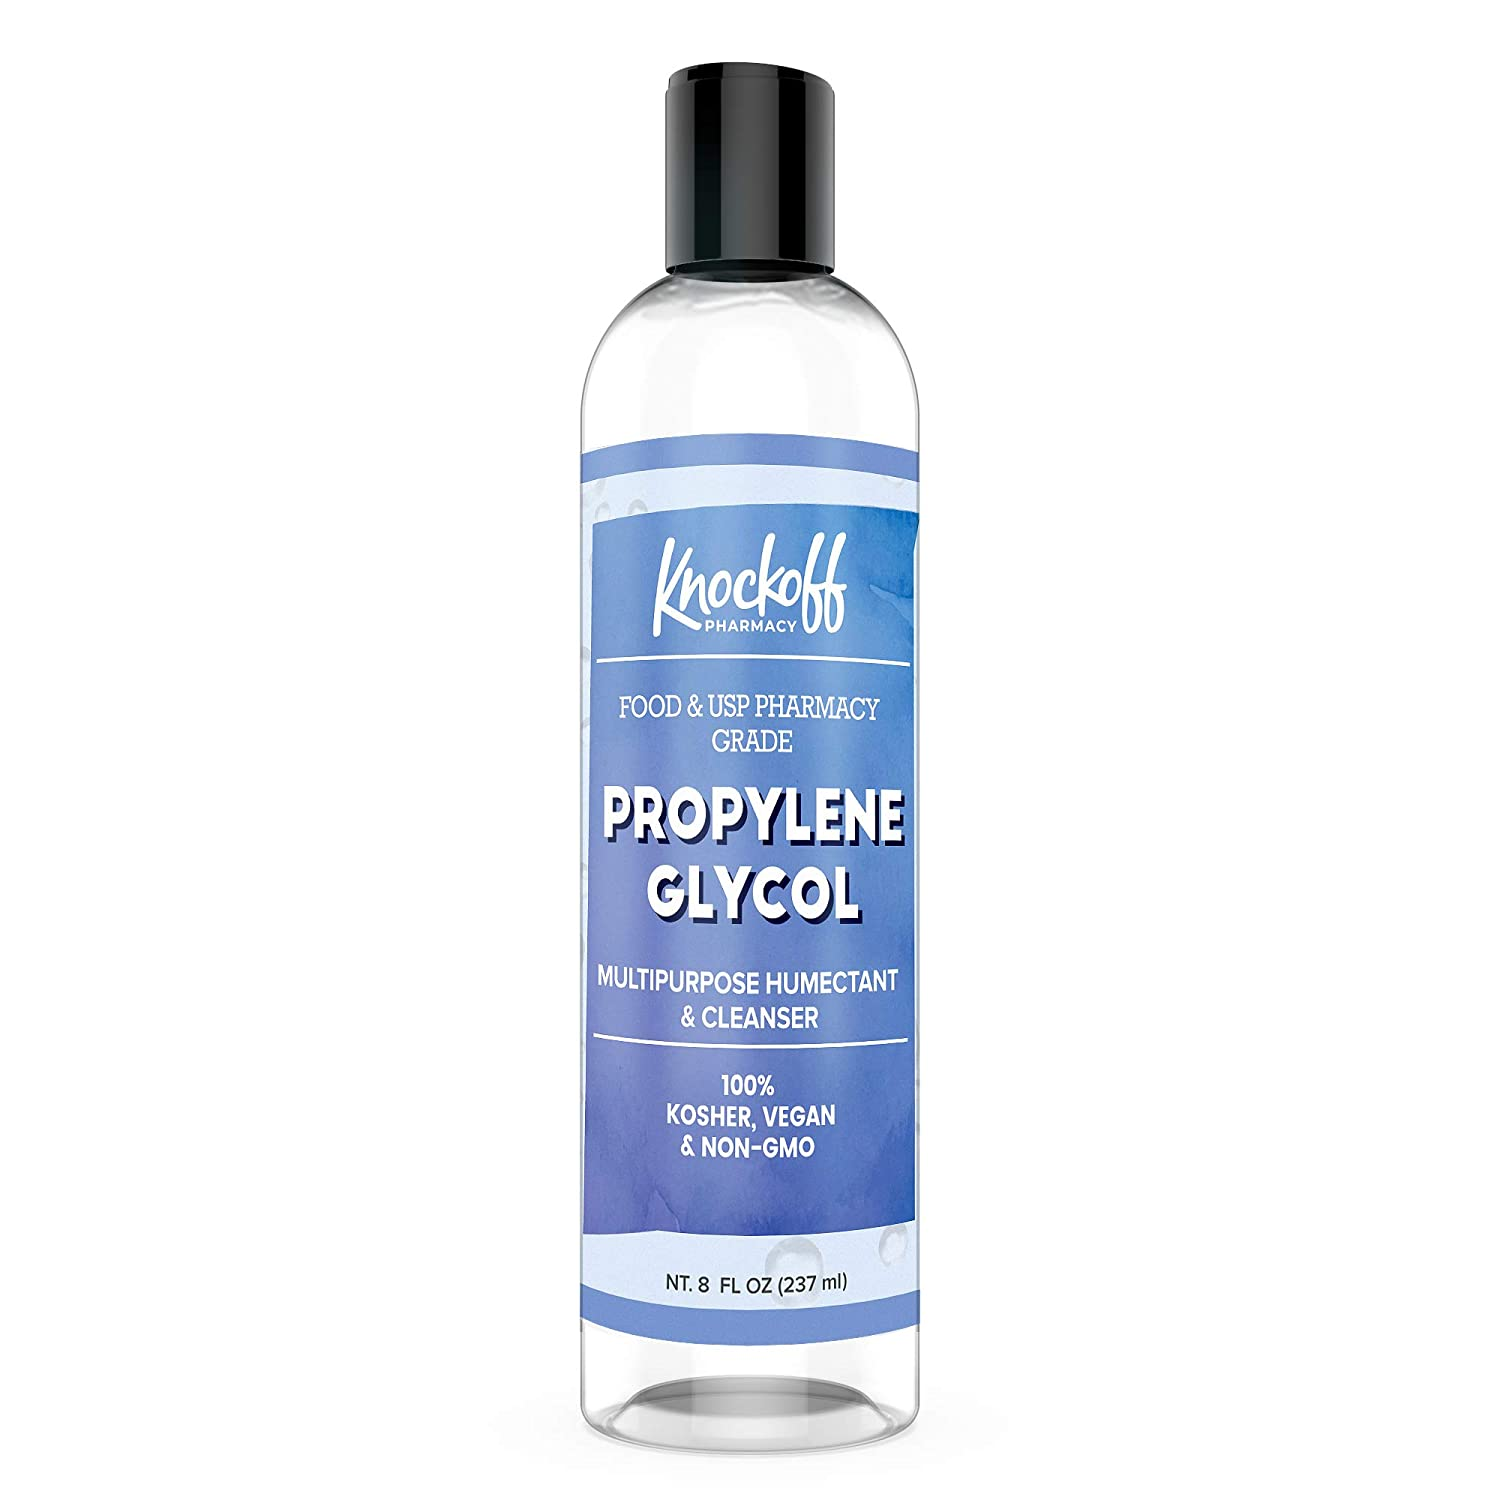 Propylene Glycol (8 oz) 100% Pure, Pharmaceutical Grade, Hypoallergenic Moisturizer & Skin Cleanser by Knock Off Pharmacy